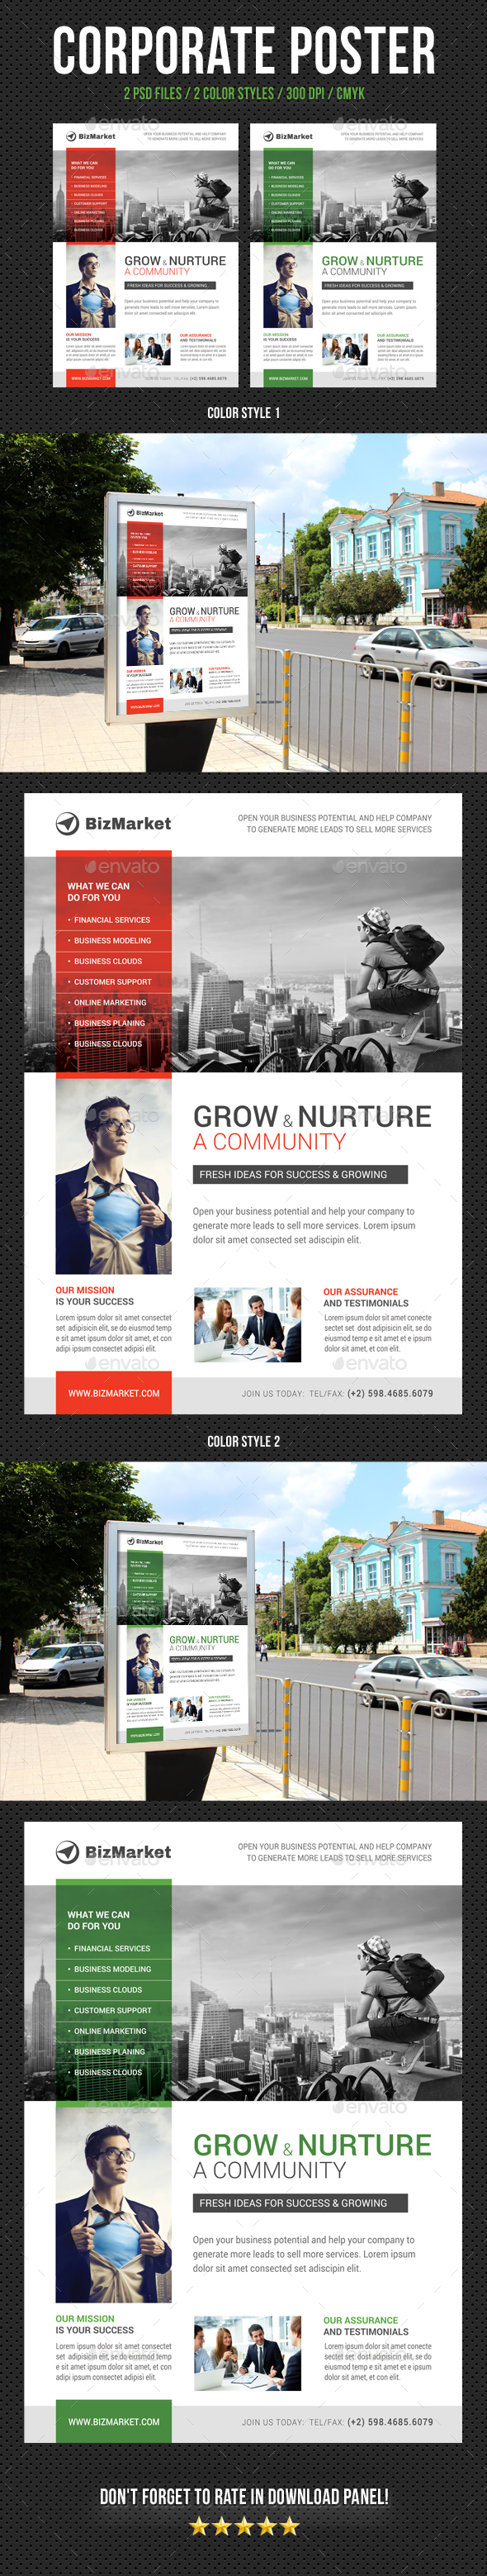 Corporate business poster template v14 by rapidgraf graphicriver corporate business poster template v14 signage print templates accmission Images